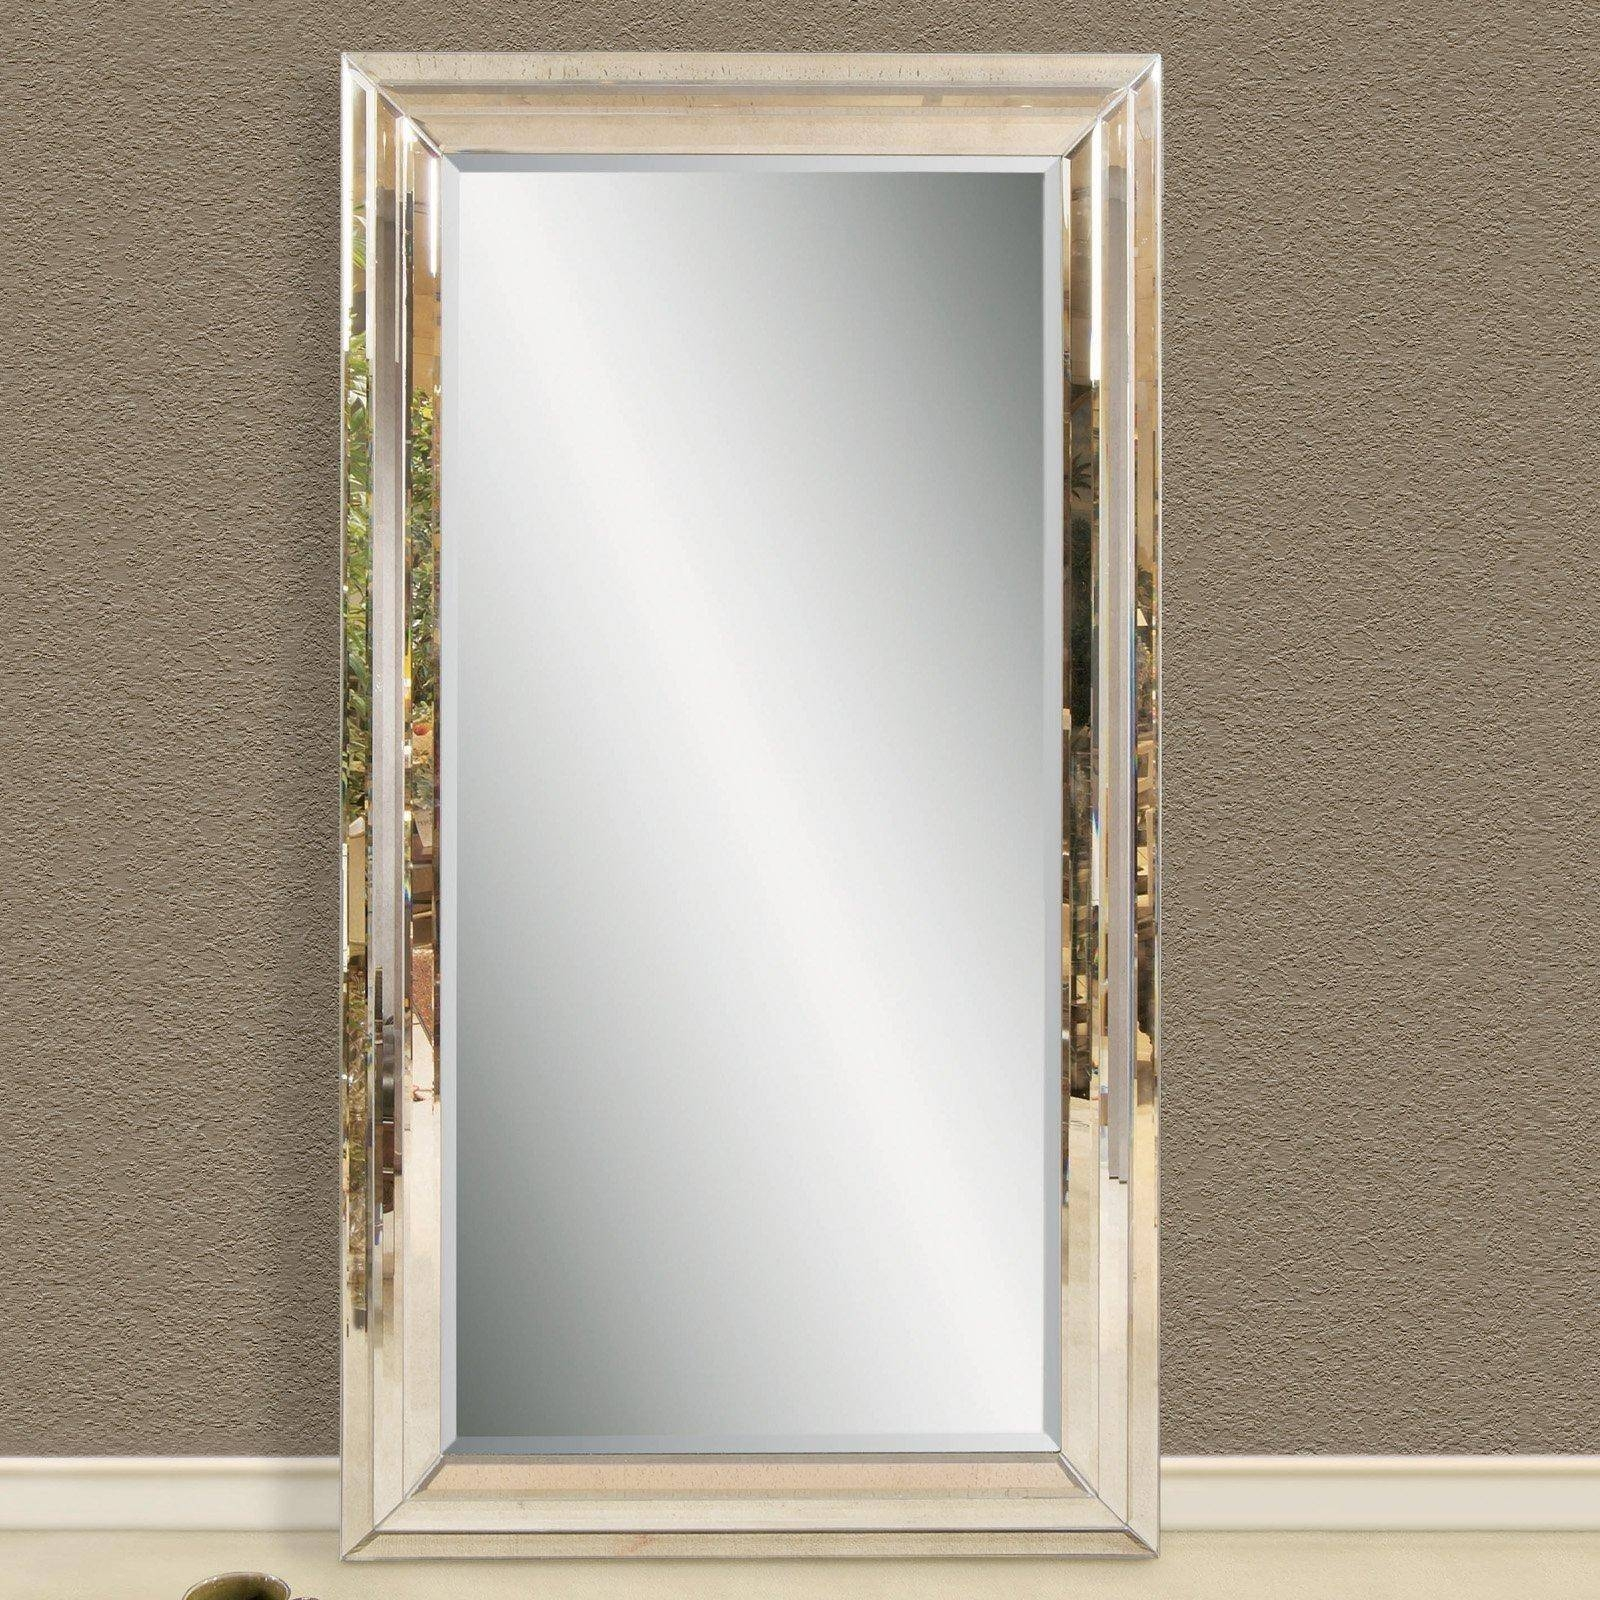 Mirror : Extra Large Leaning Floor Mirrors | Floor Decoration in Extra Large Full Length Mirrors (Image 12 of 15)